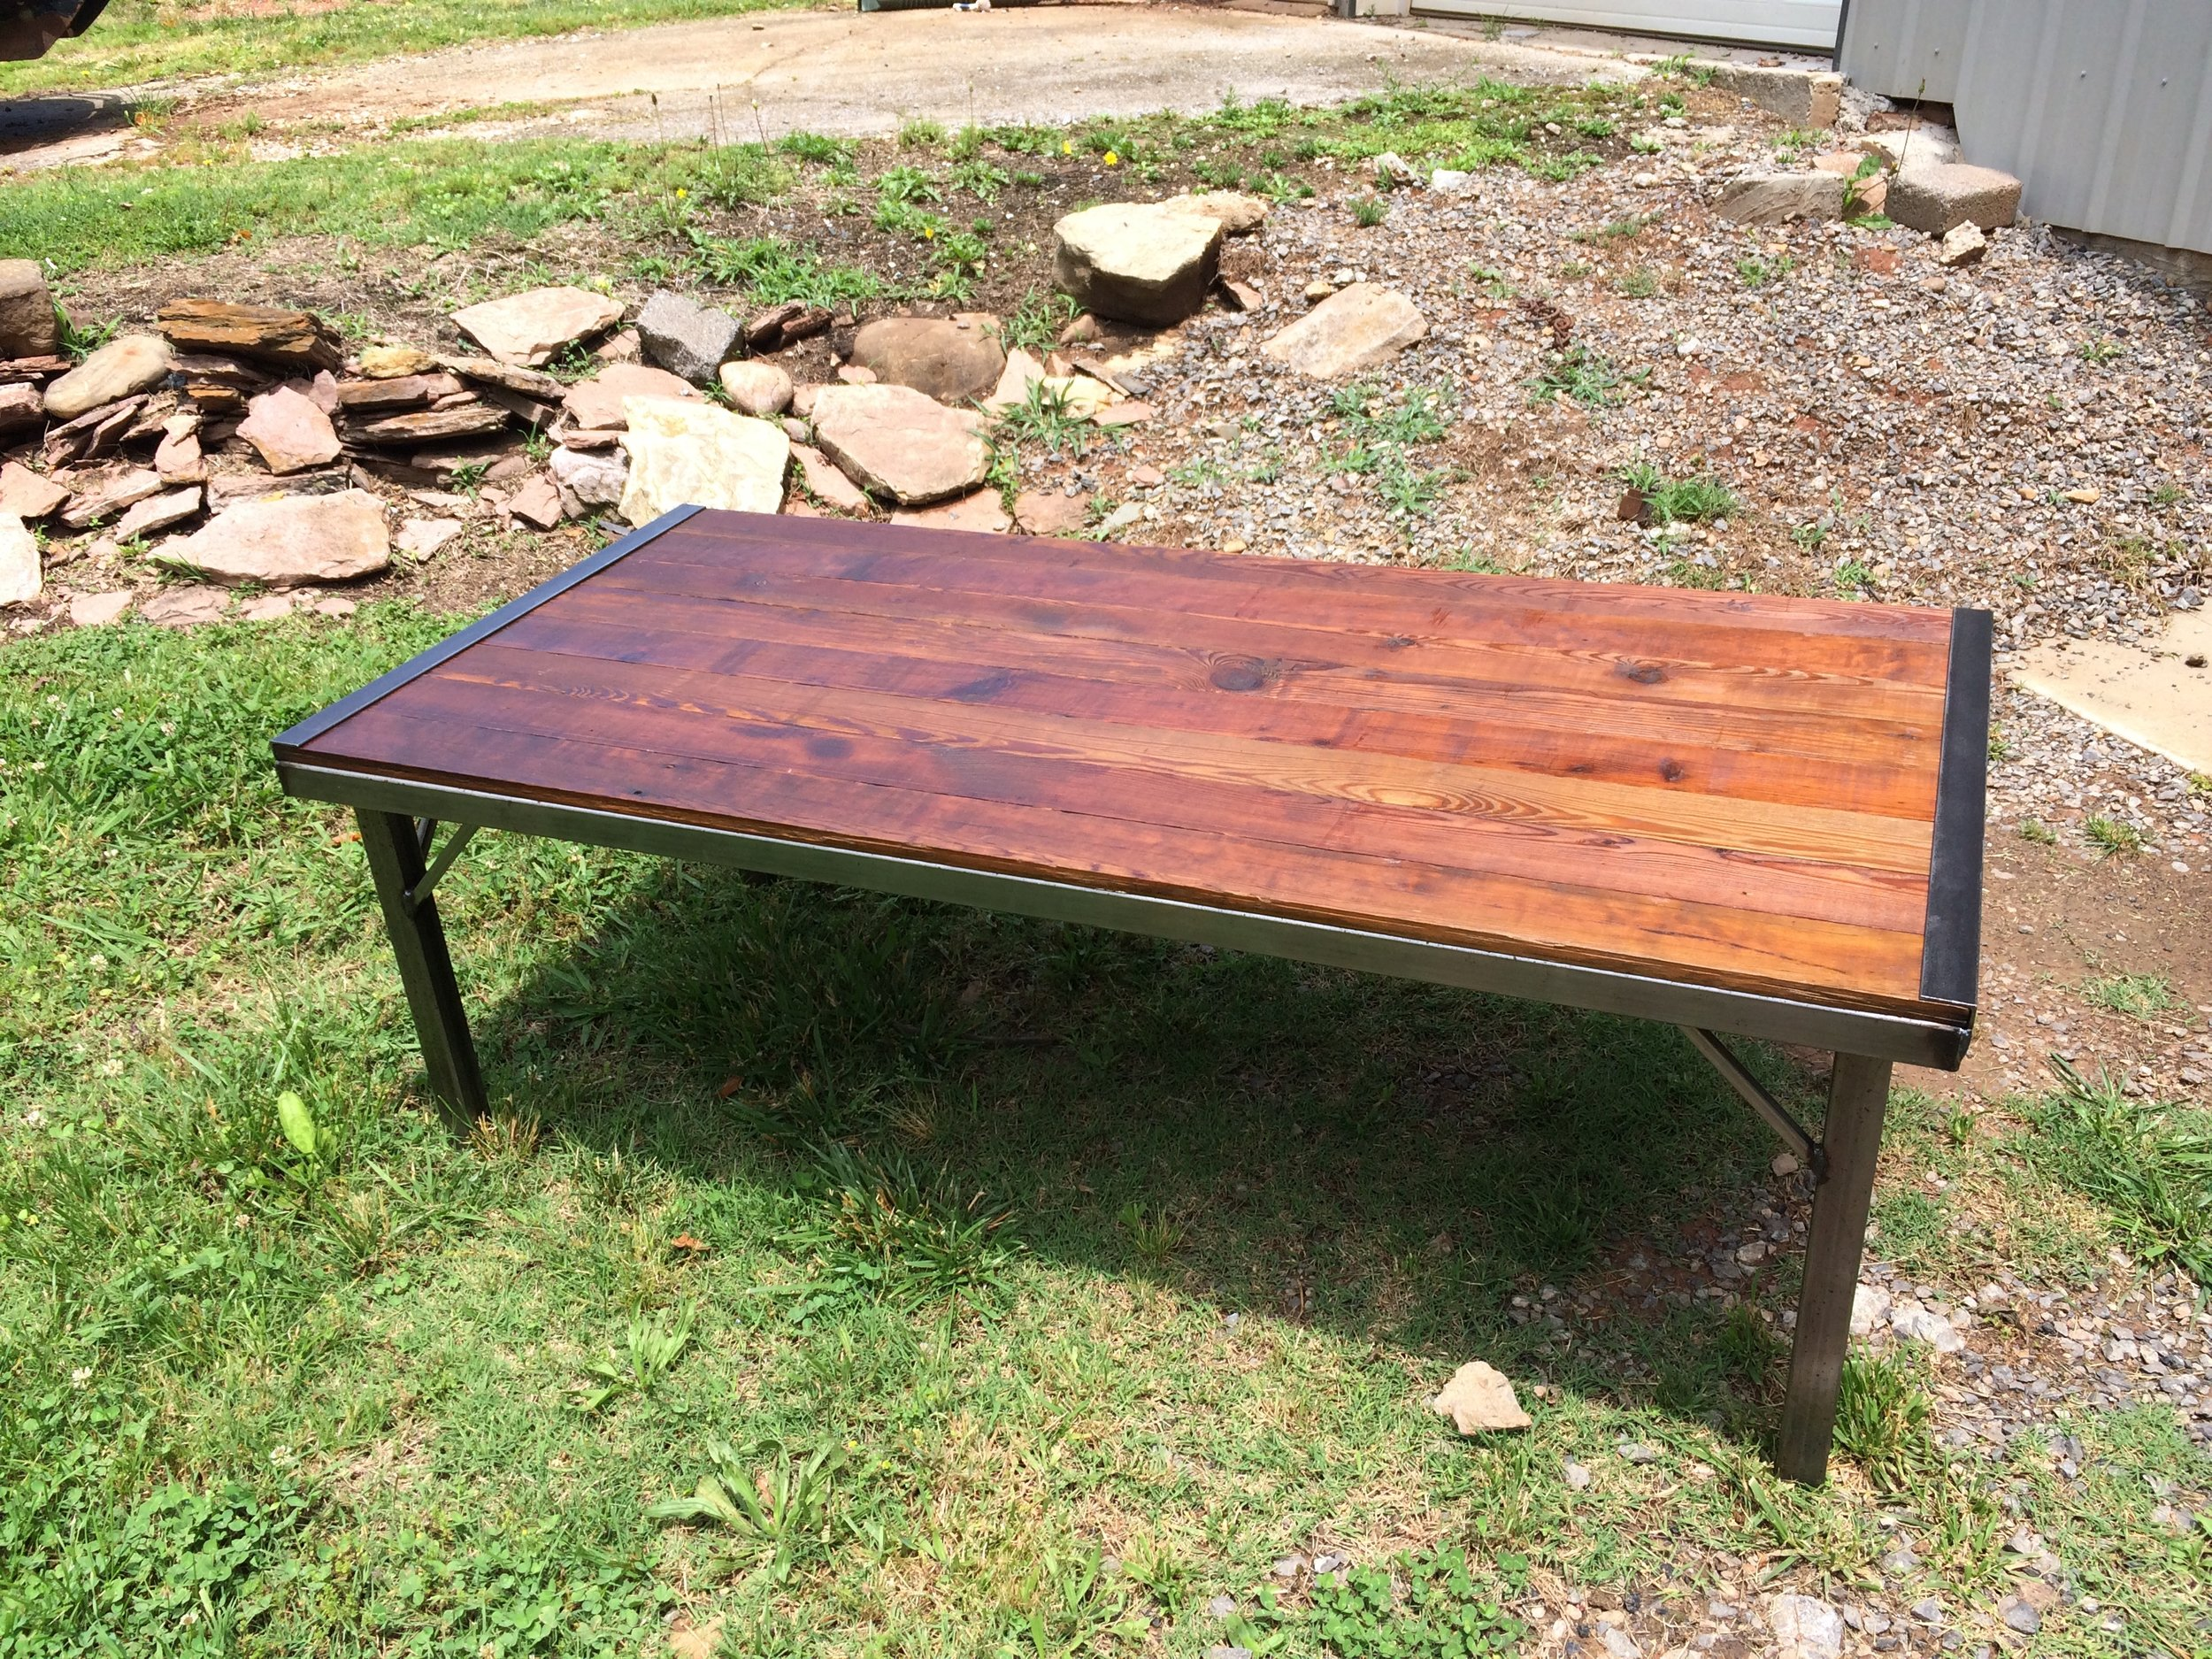 Clint Smith's coffee table he made of barn wood and welded steel.